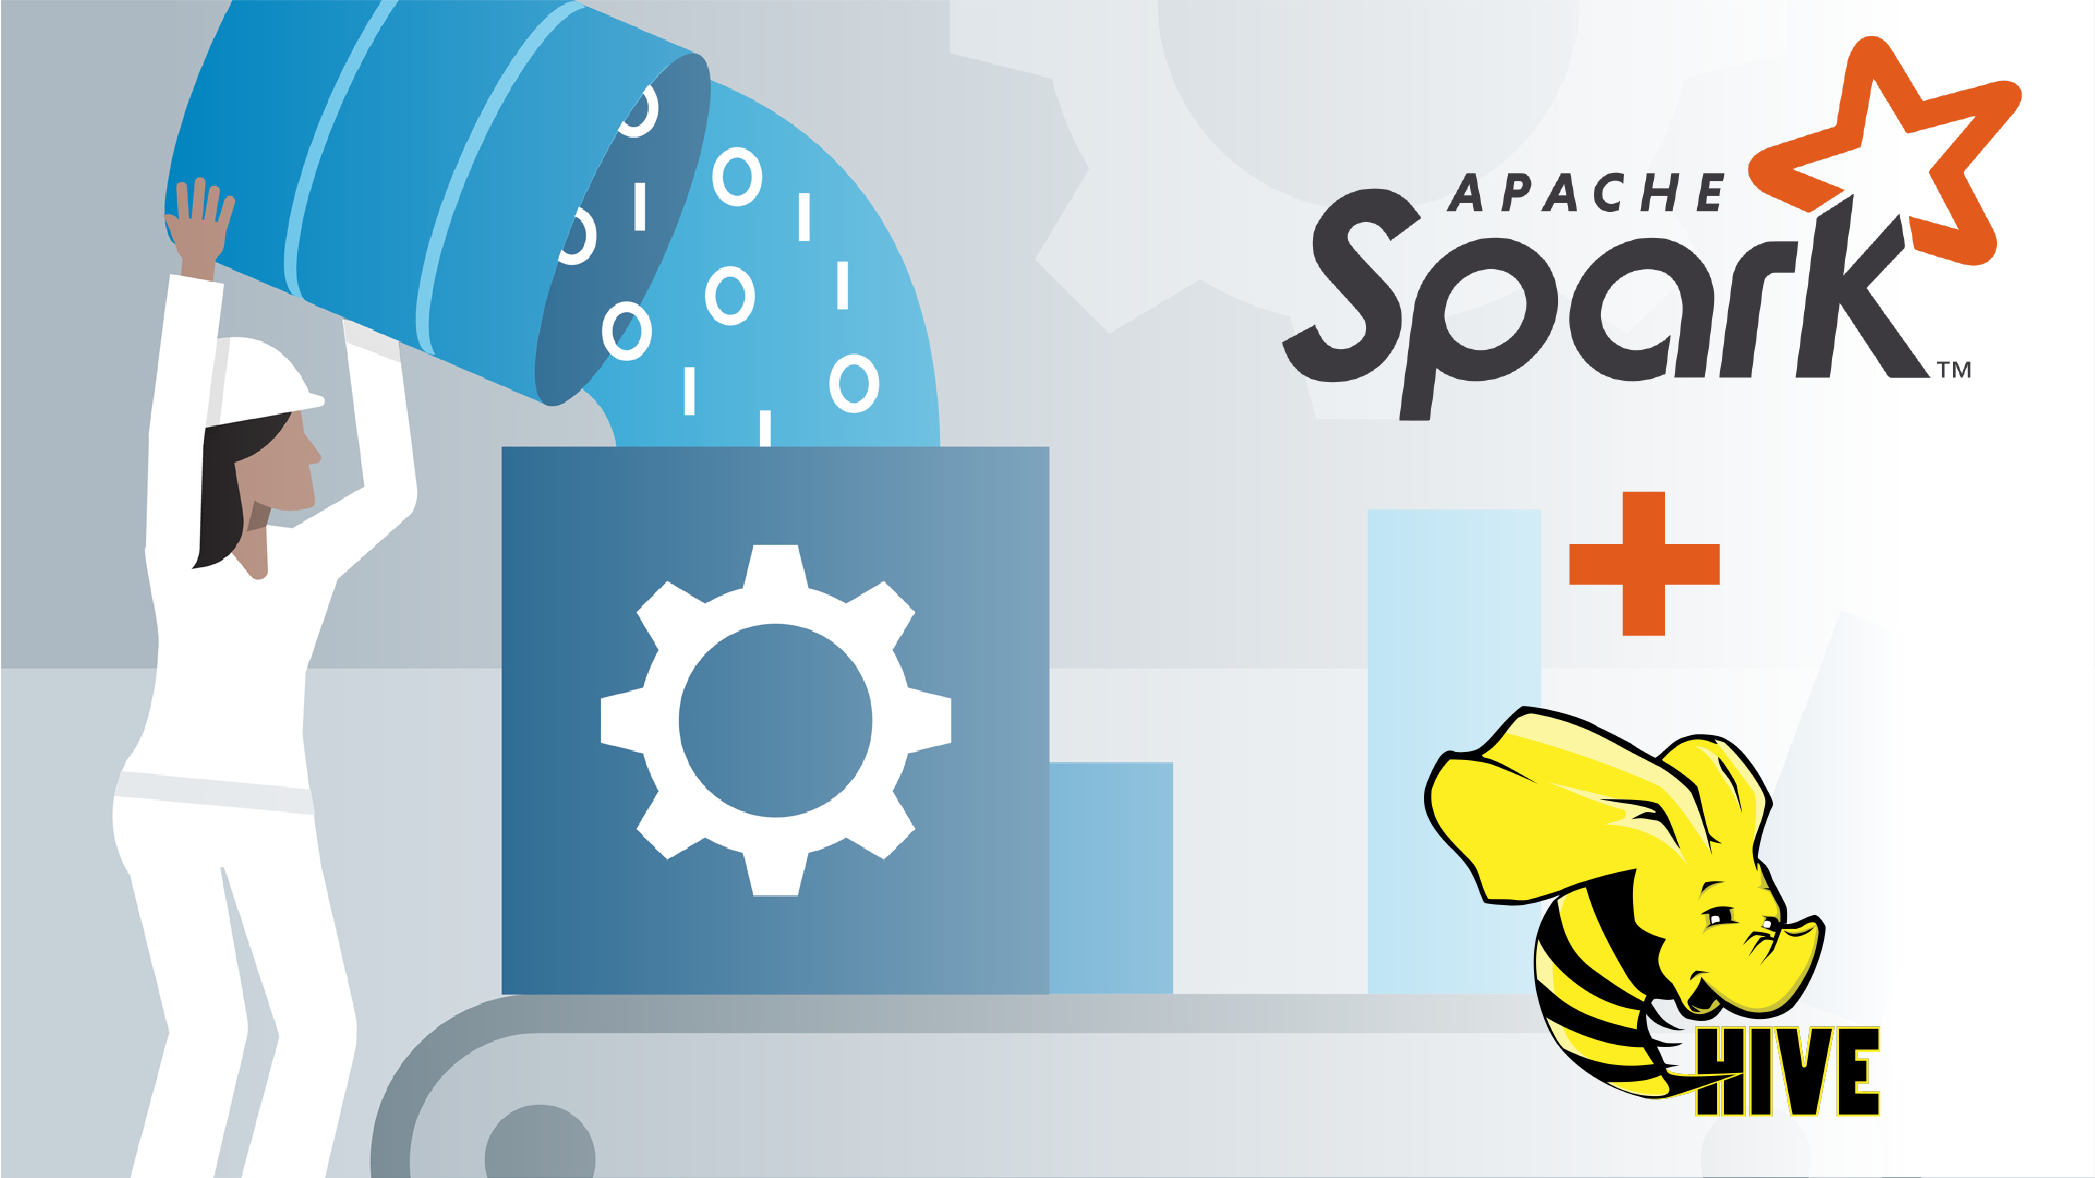 Enabling Hive on Spark on CDH 5 14 — a few problems (and